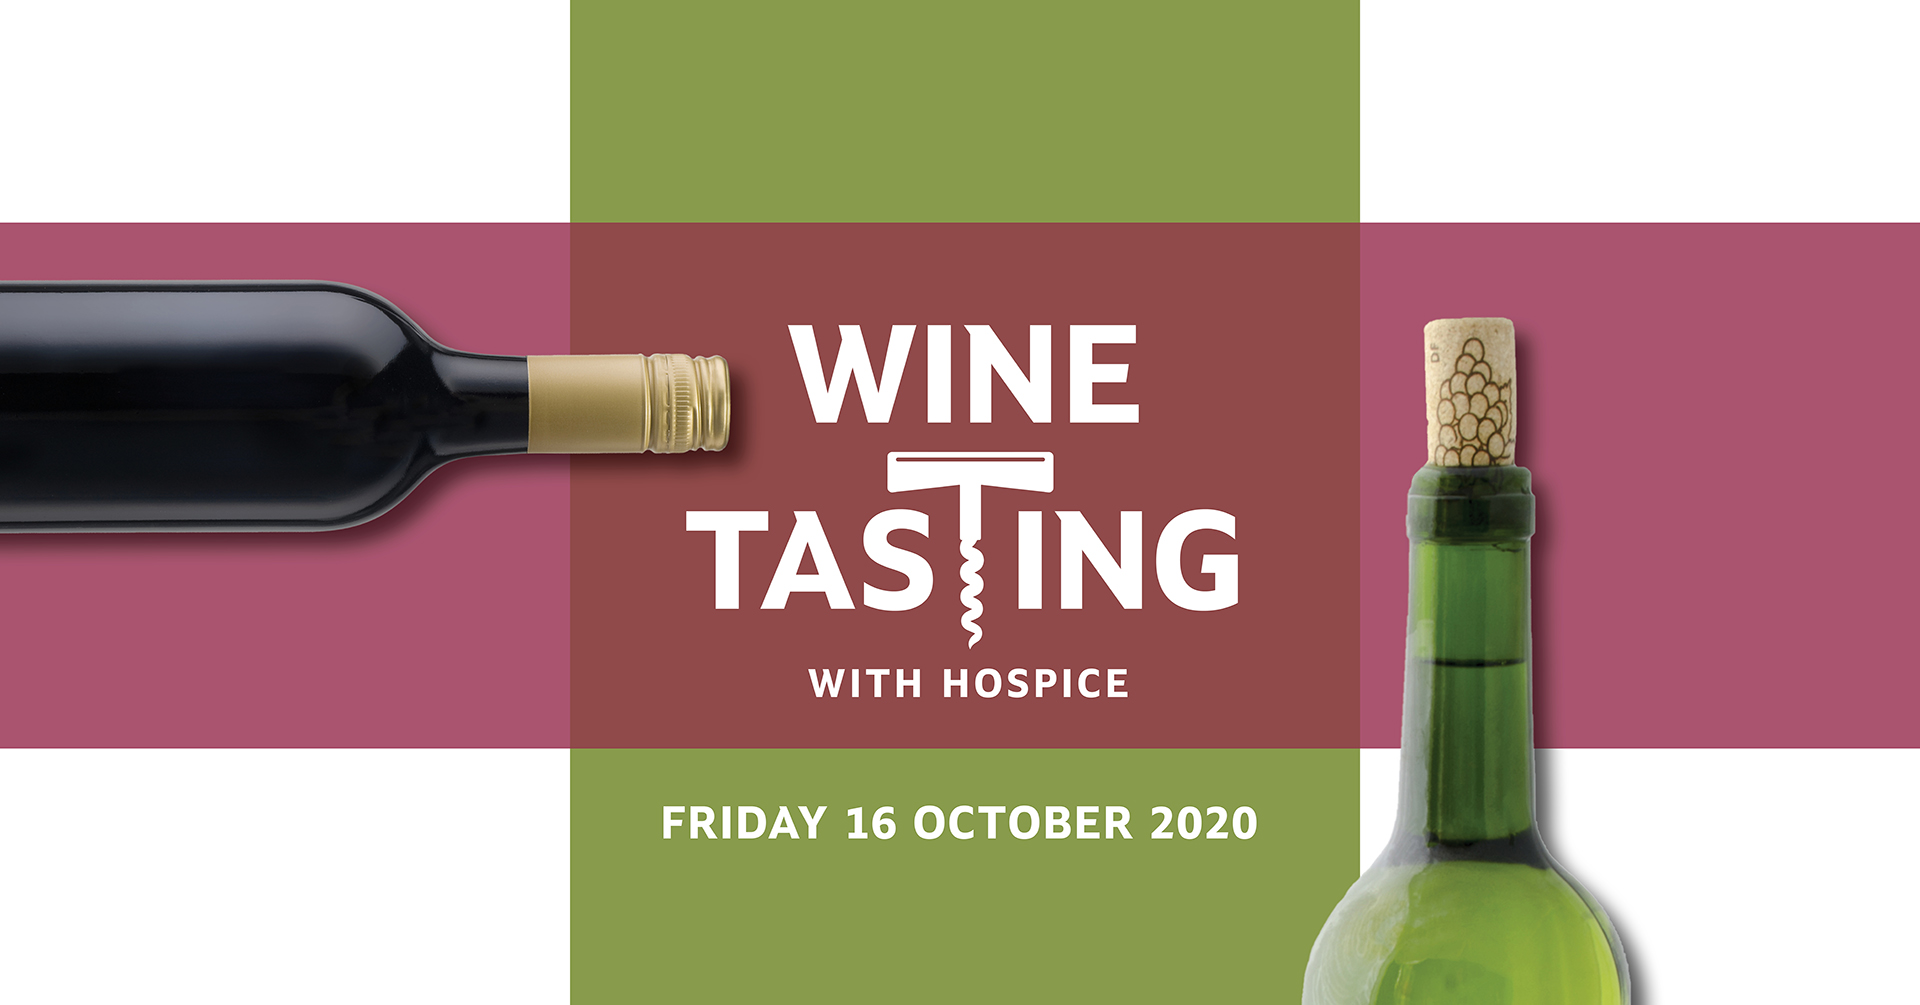 Wine tasting with Hospice Event banner